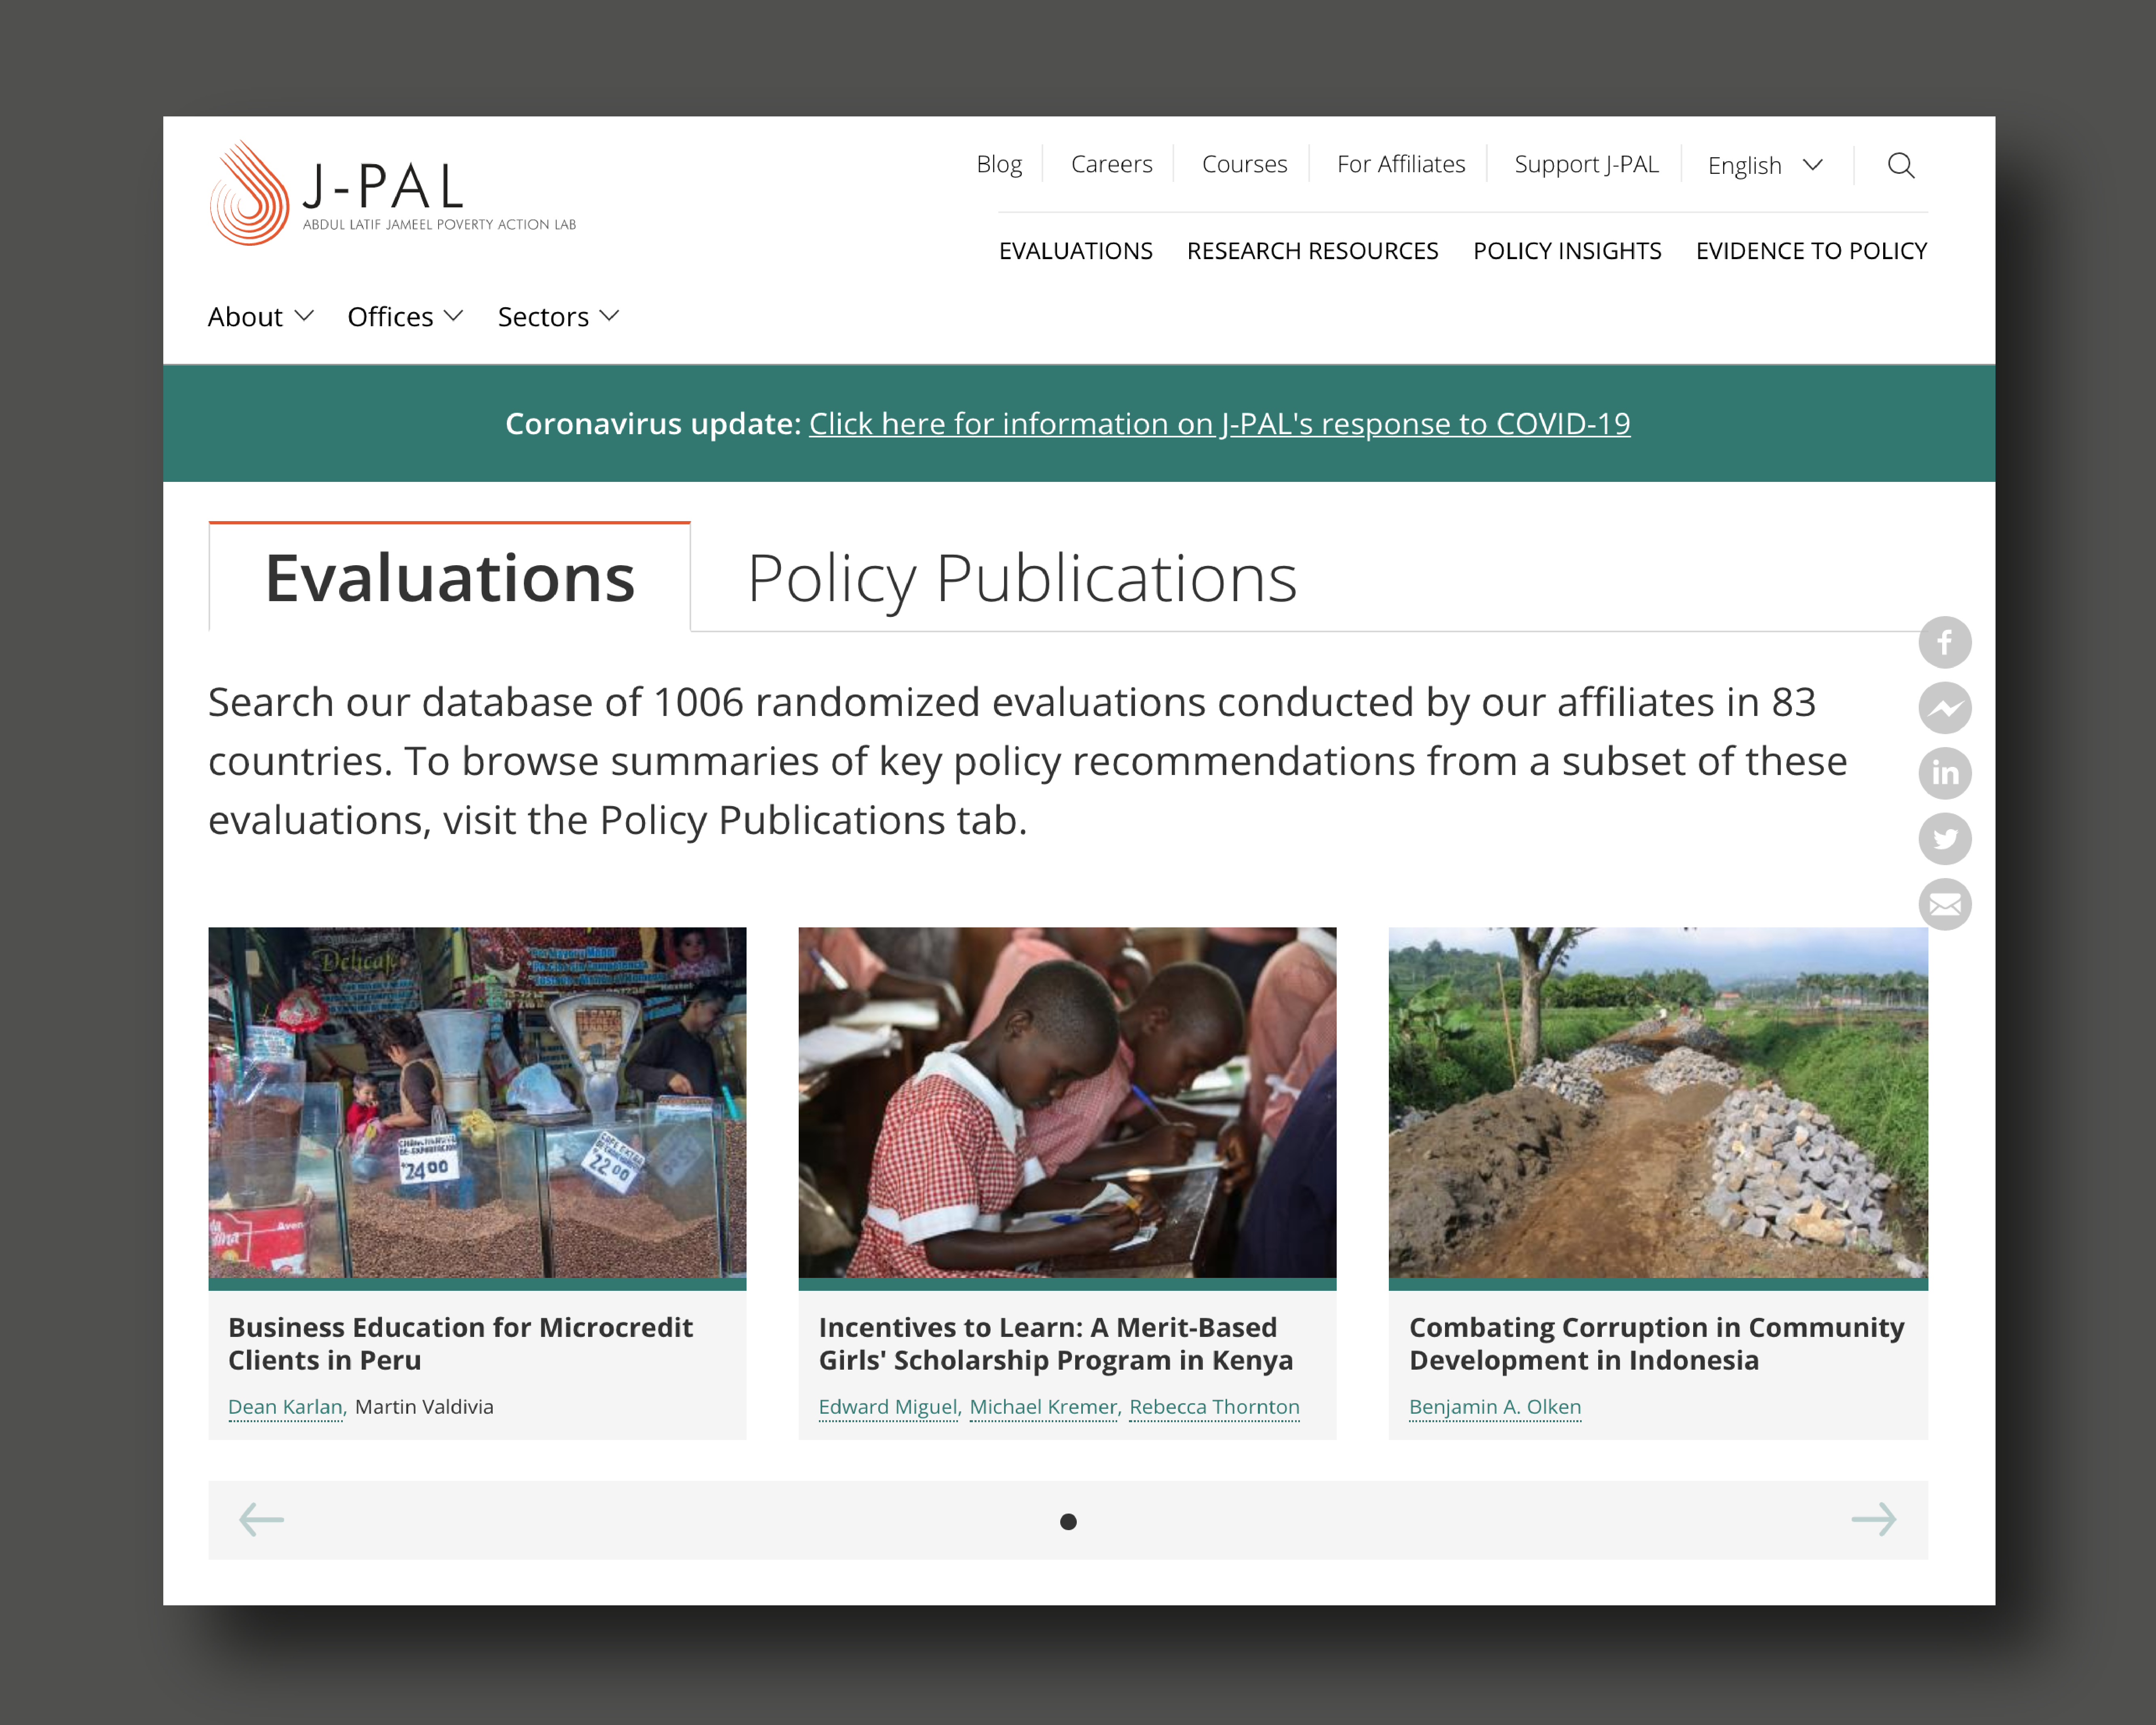 J-PAL evaluations homepage with featured evaluations